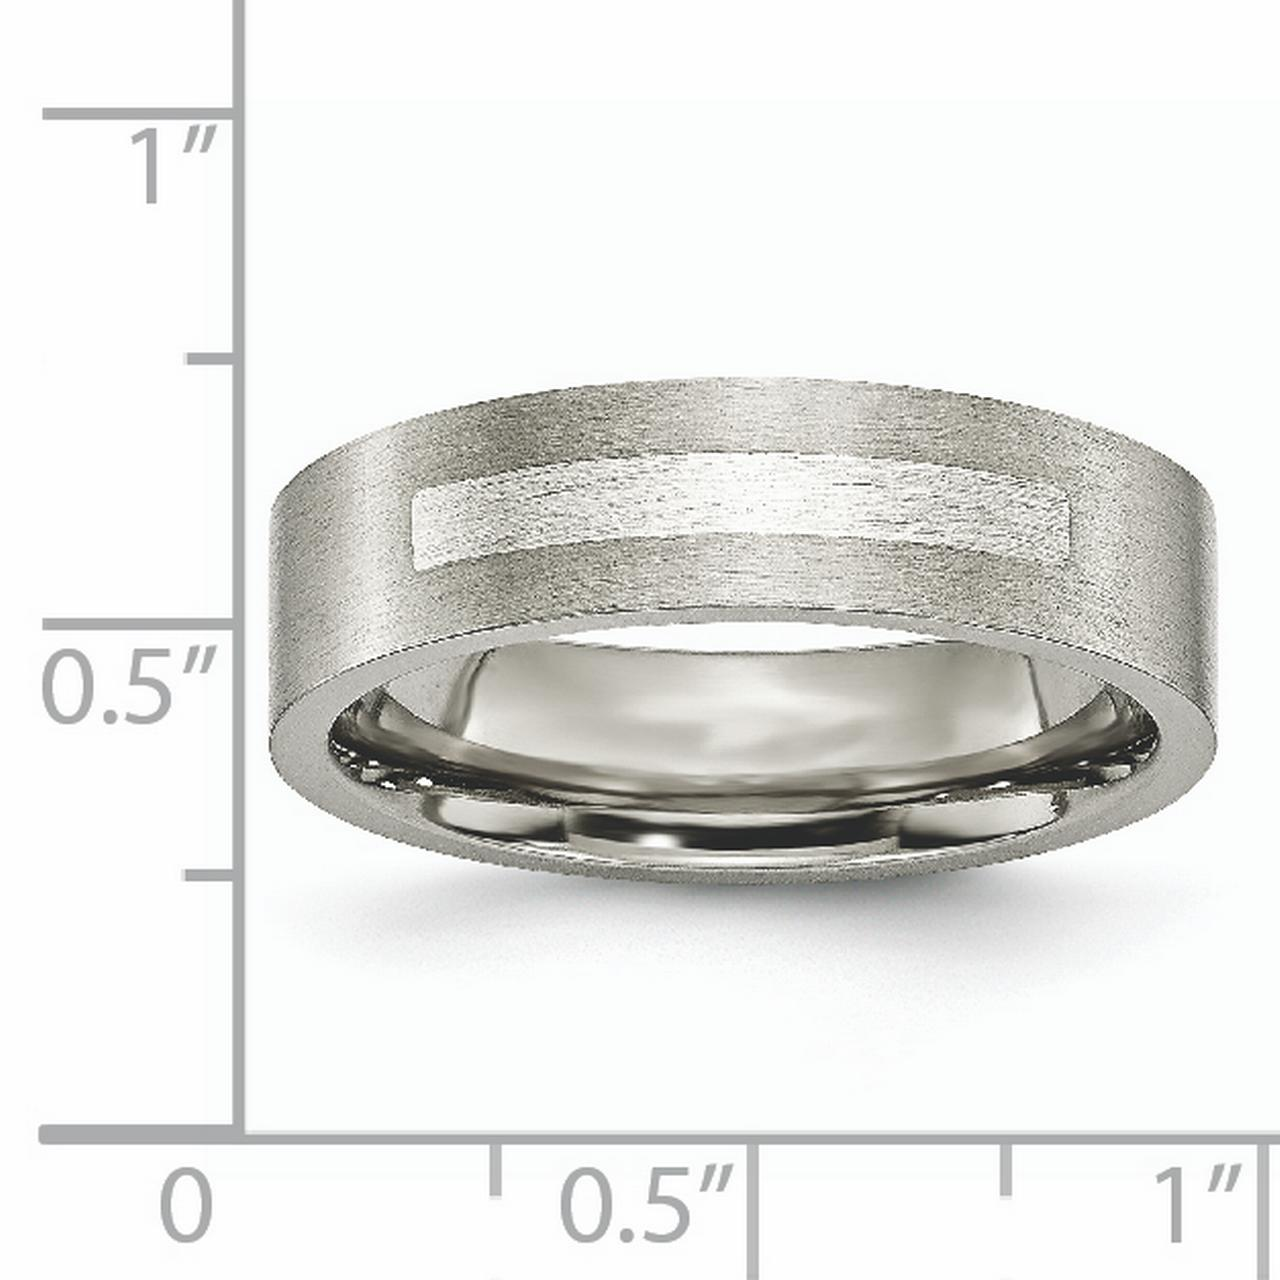 Titanium Flat 6mm 925 Sterling Silver Inlay Brushed Wedding Ring Band Size 12.50 Precious Metal Fine Jewelry Gifts For Women For Her - image 6 of 7